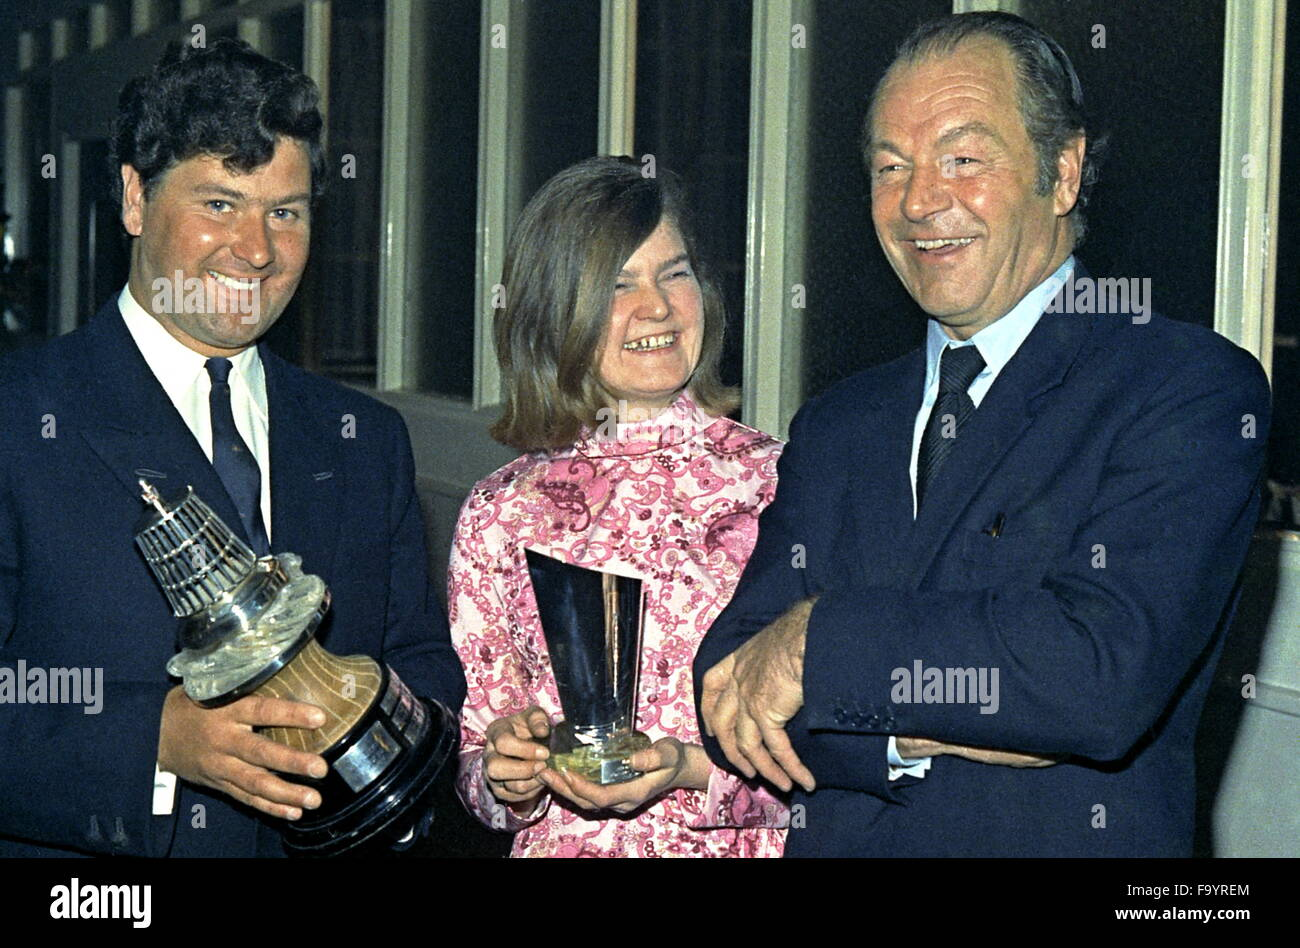 AJAXNETPHOTO. 4TH JANUARY, 1972. LONDON, ENGLAND. - YACHTSPERSONS OF THE YEAR. - (L-R) WRONG-WAY-ROUND SAILOR CHAY - Stock Image